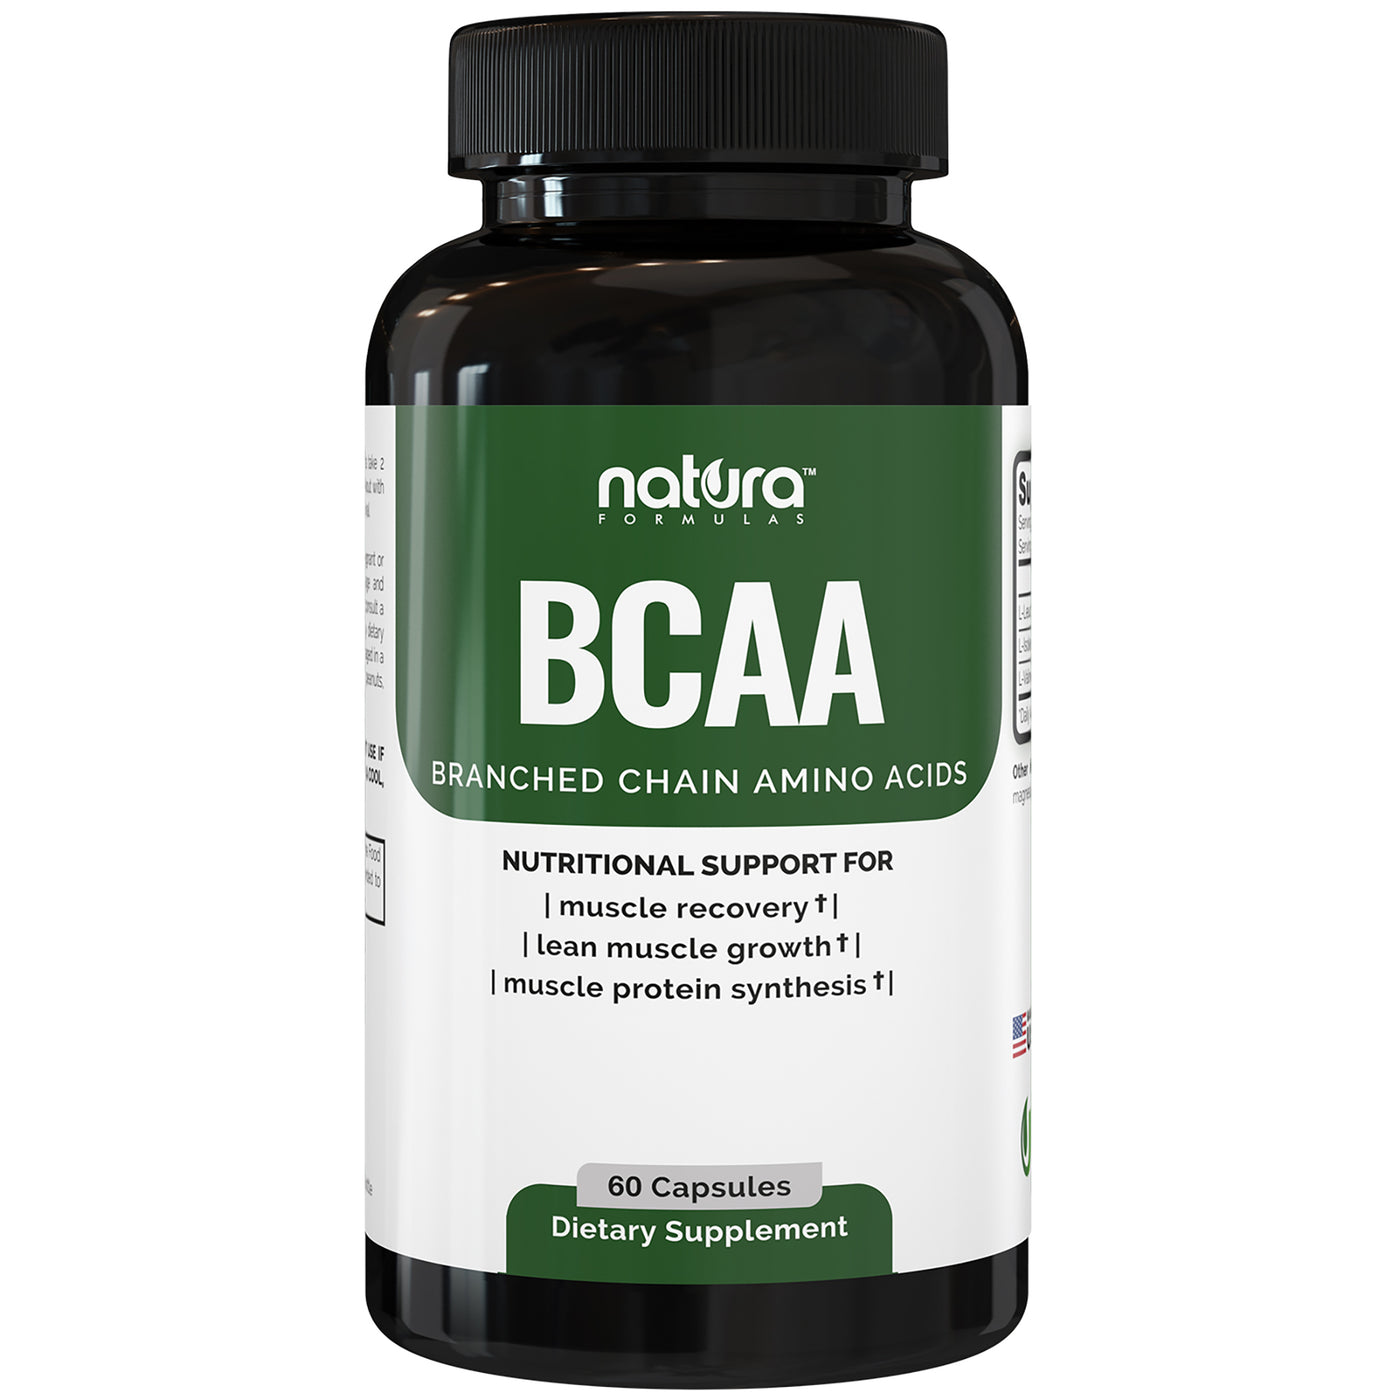 Natural Branched Chain Amino Acids